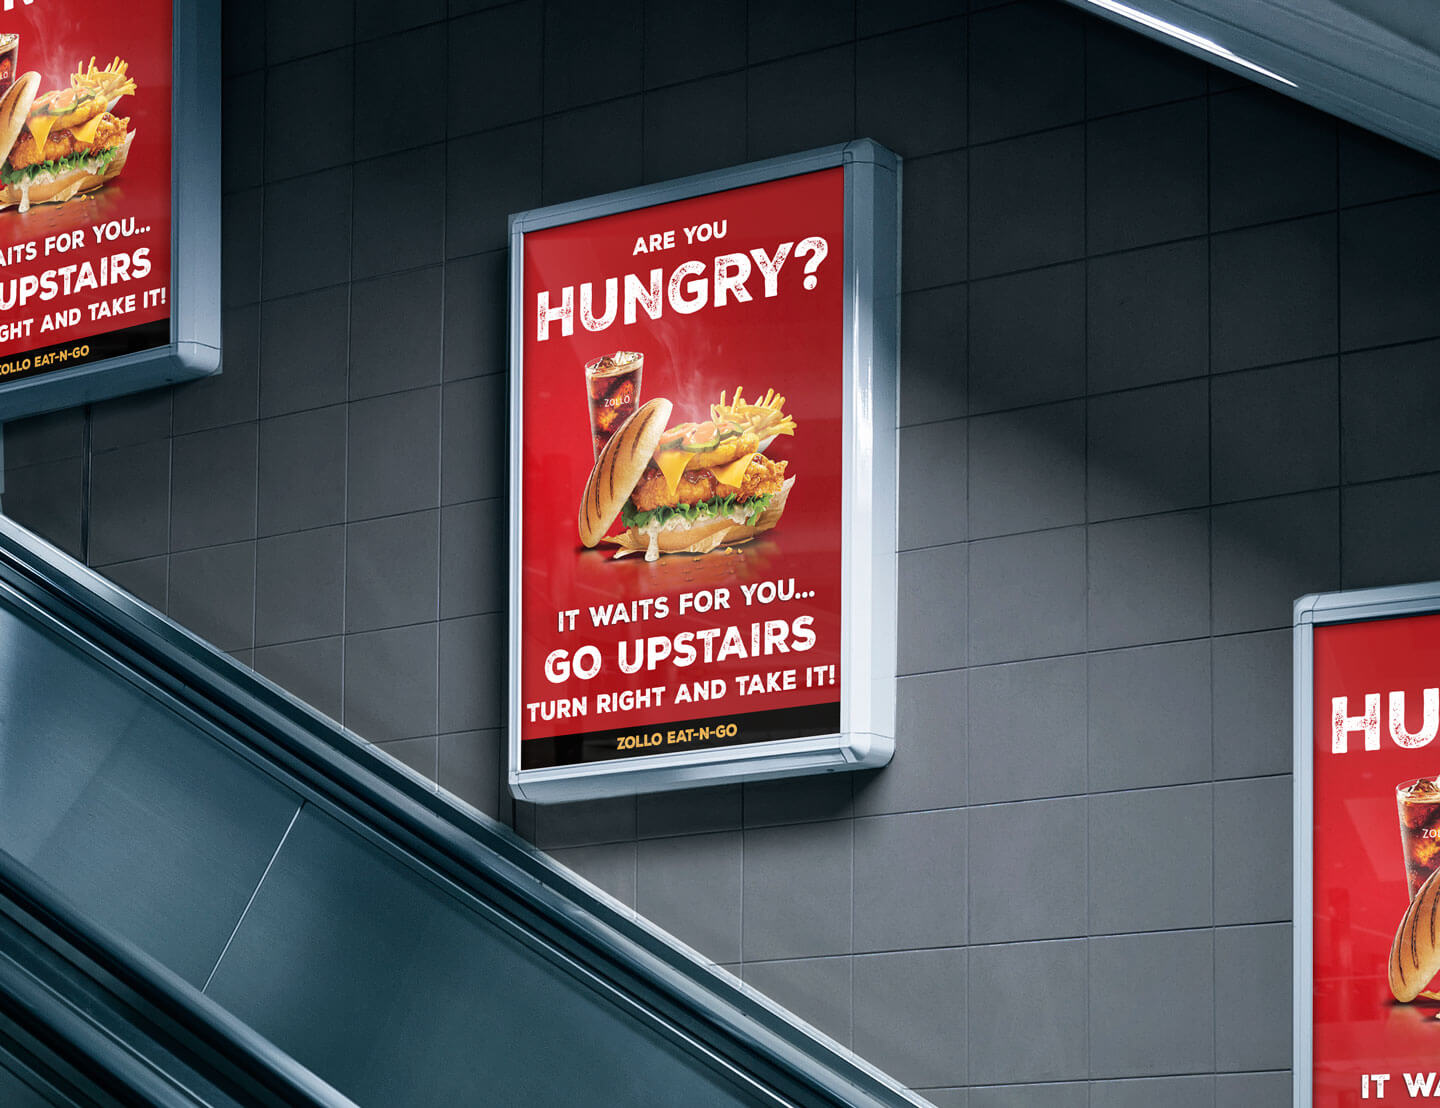 Underground advertising made with Fujitrans. Design made by Zollo.Design